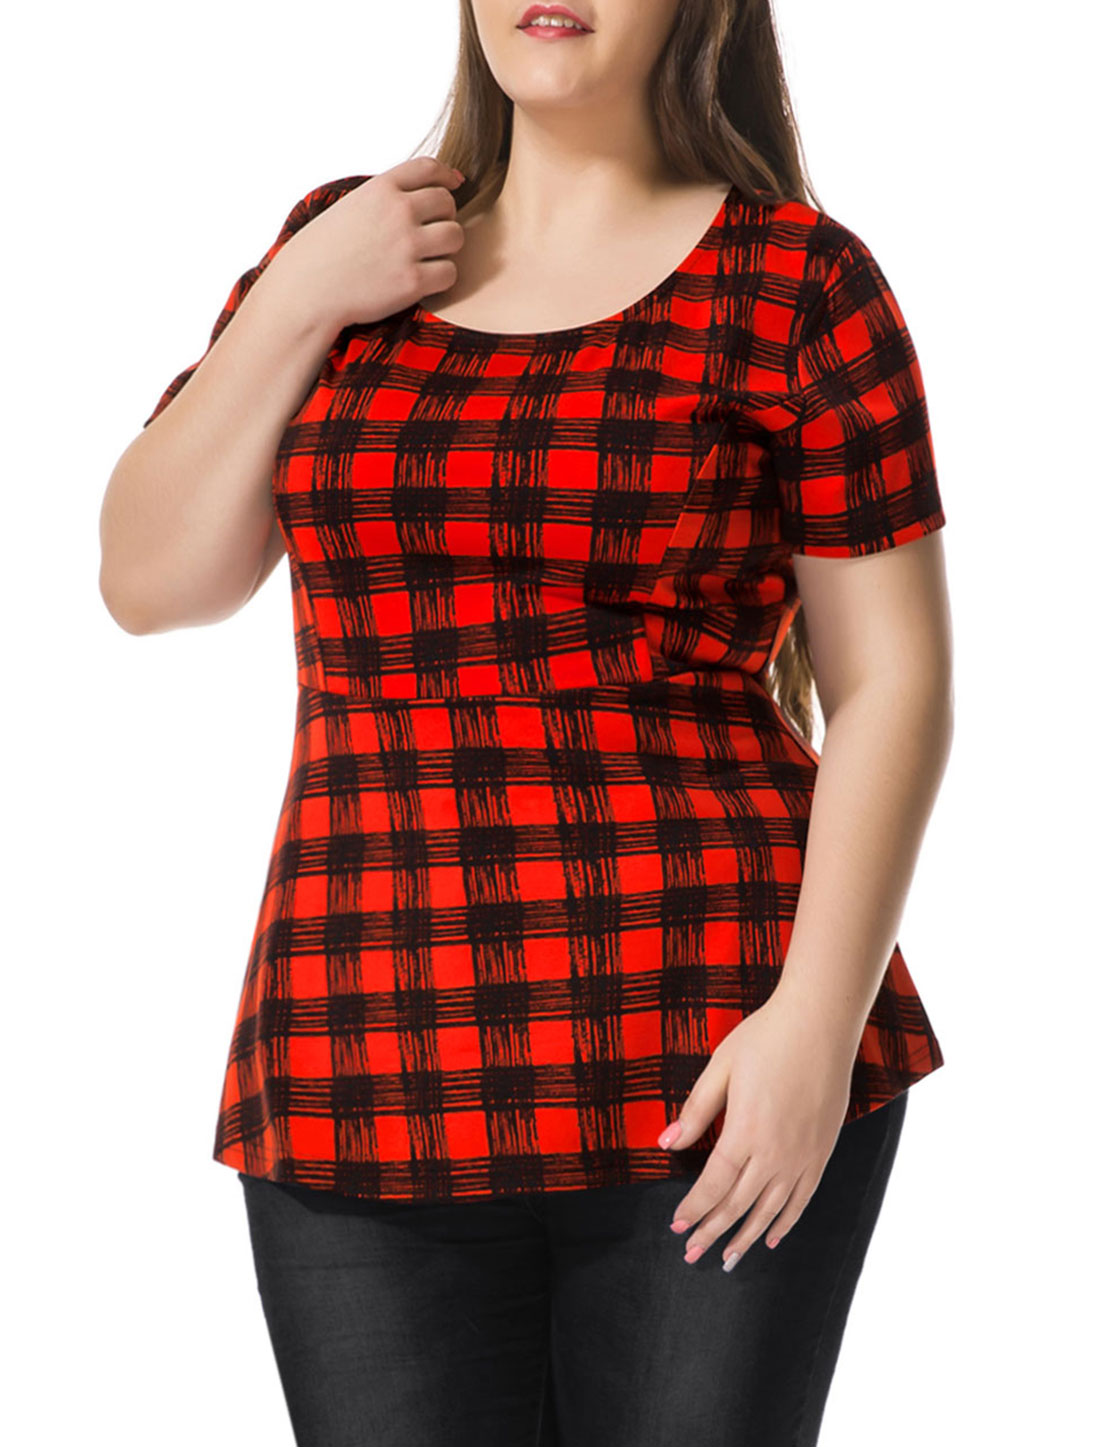 Women Plus Size Short Sleeves Checked Peplum Top Black Red 2X